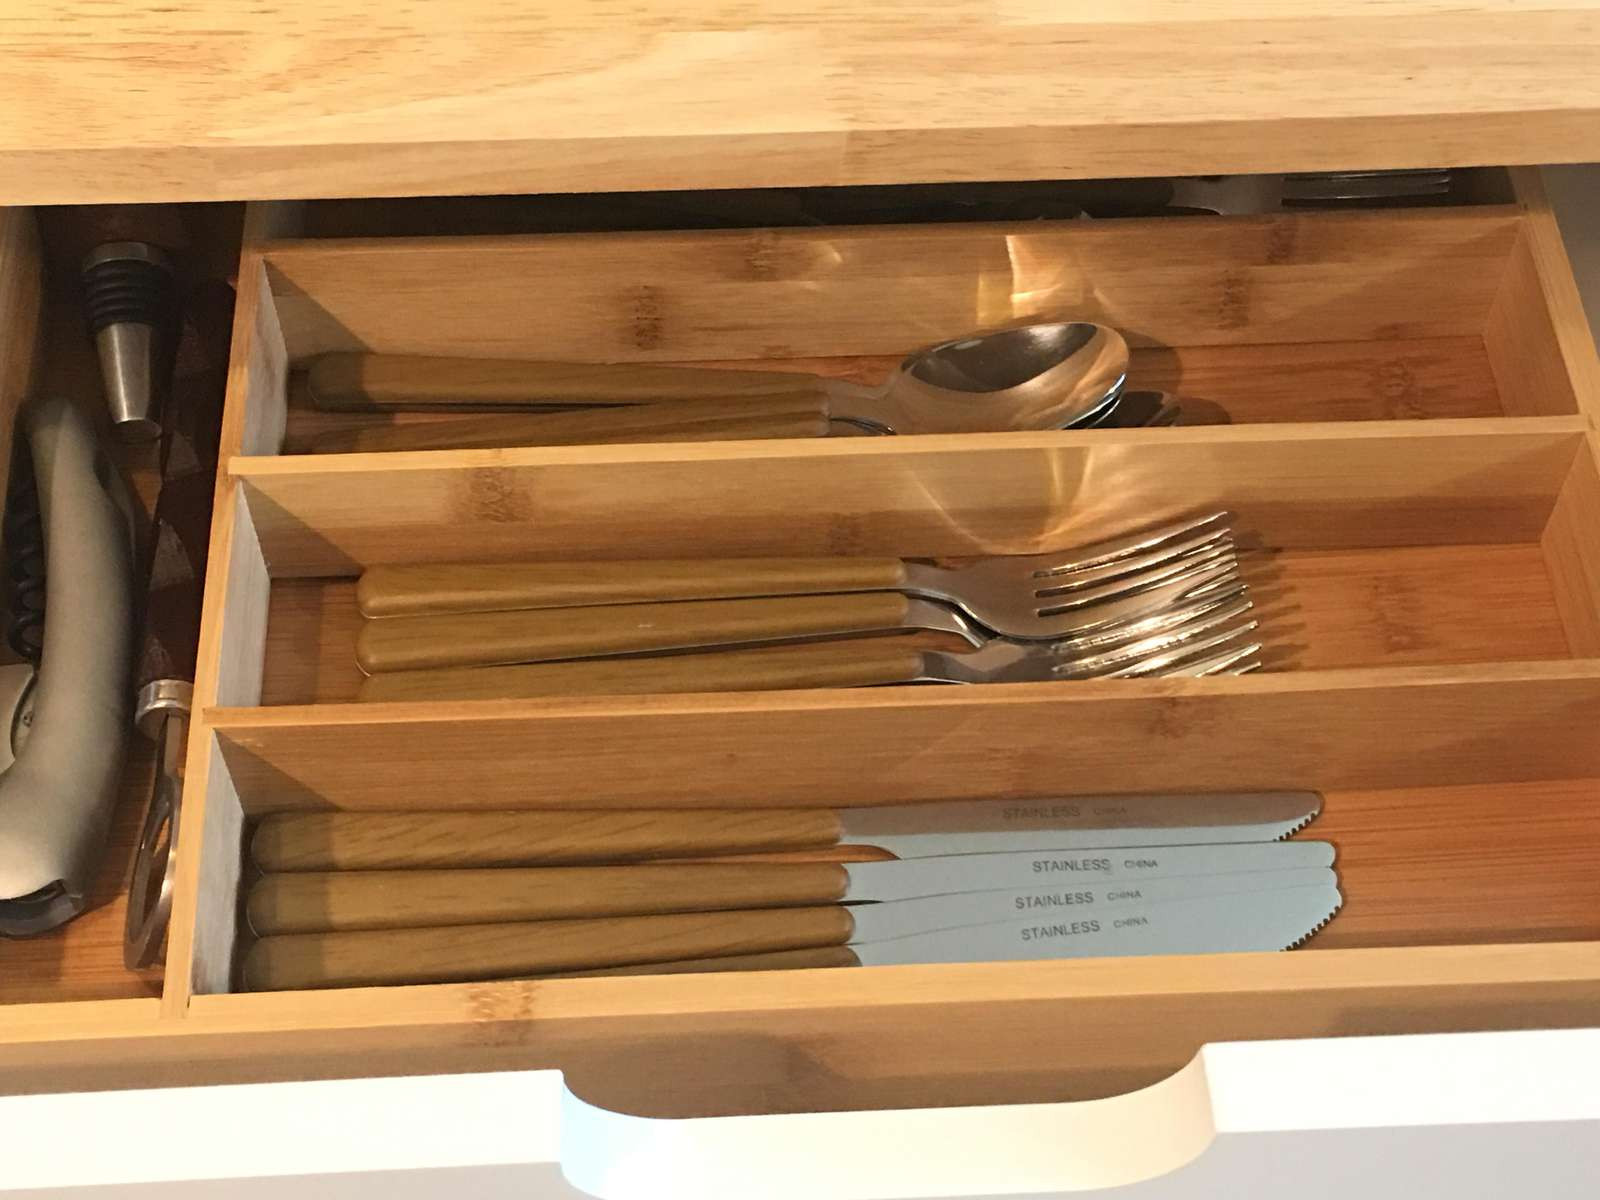 Corkscrew and cutlery drawer provides everything you need.